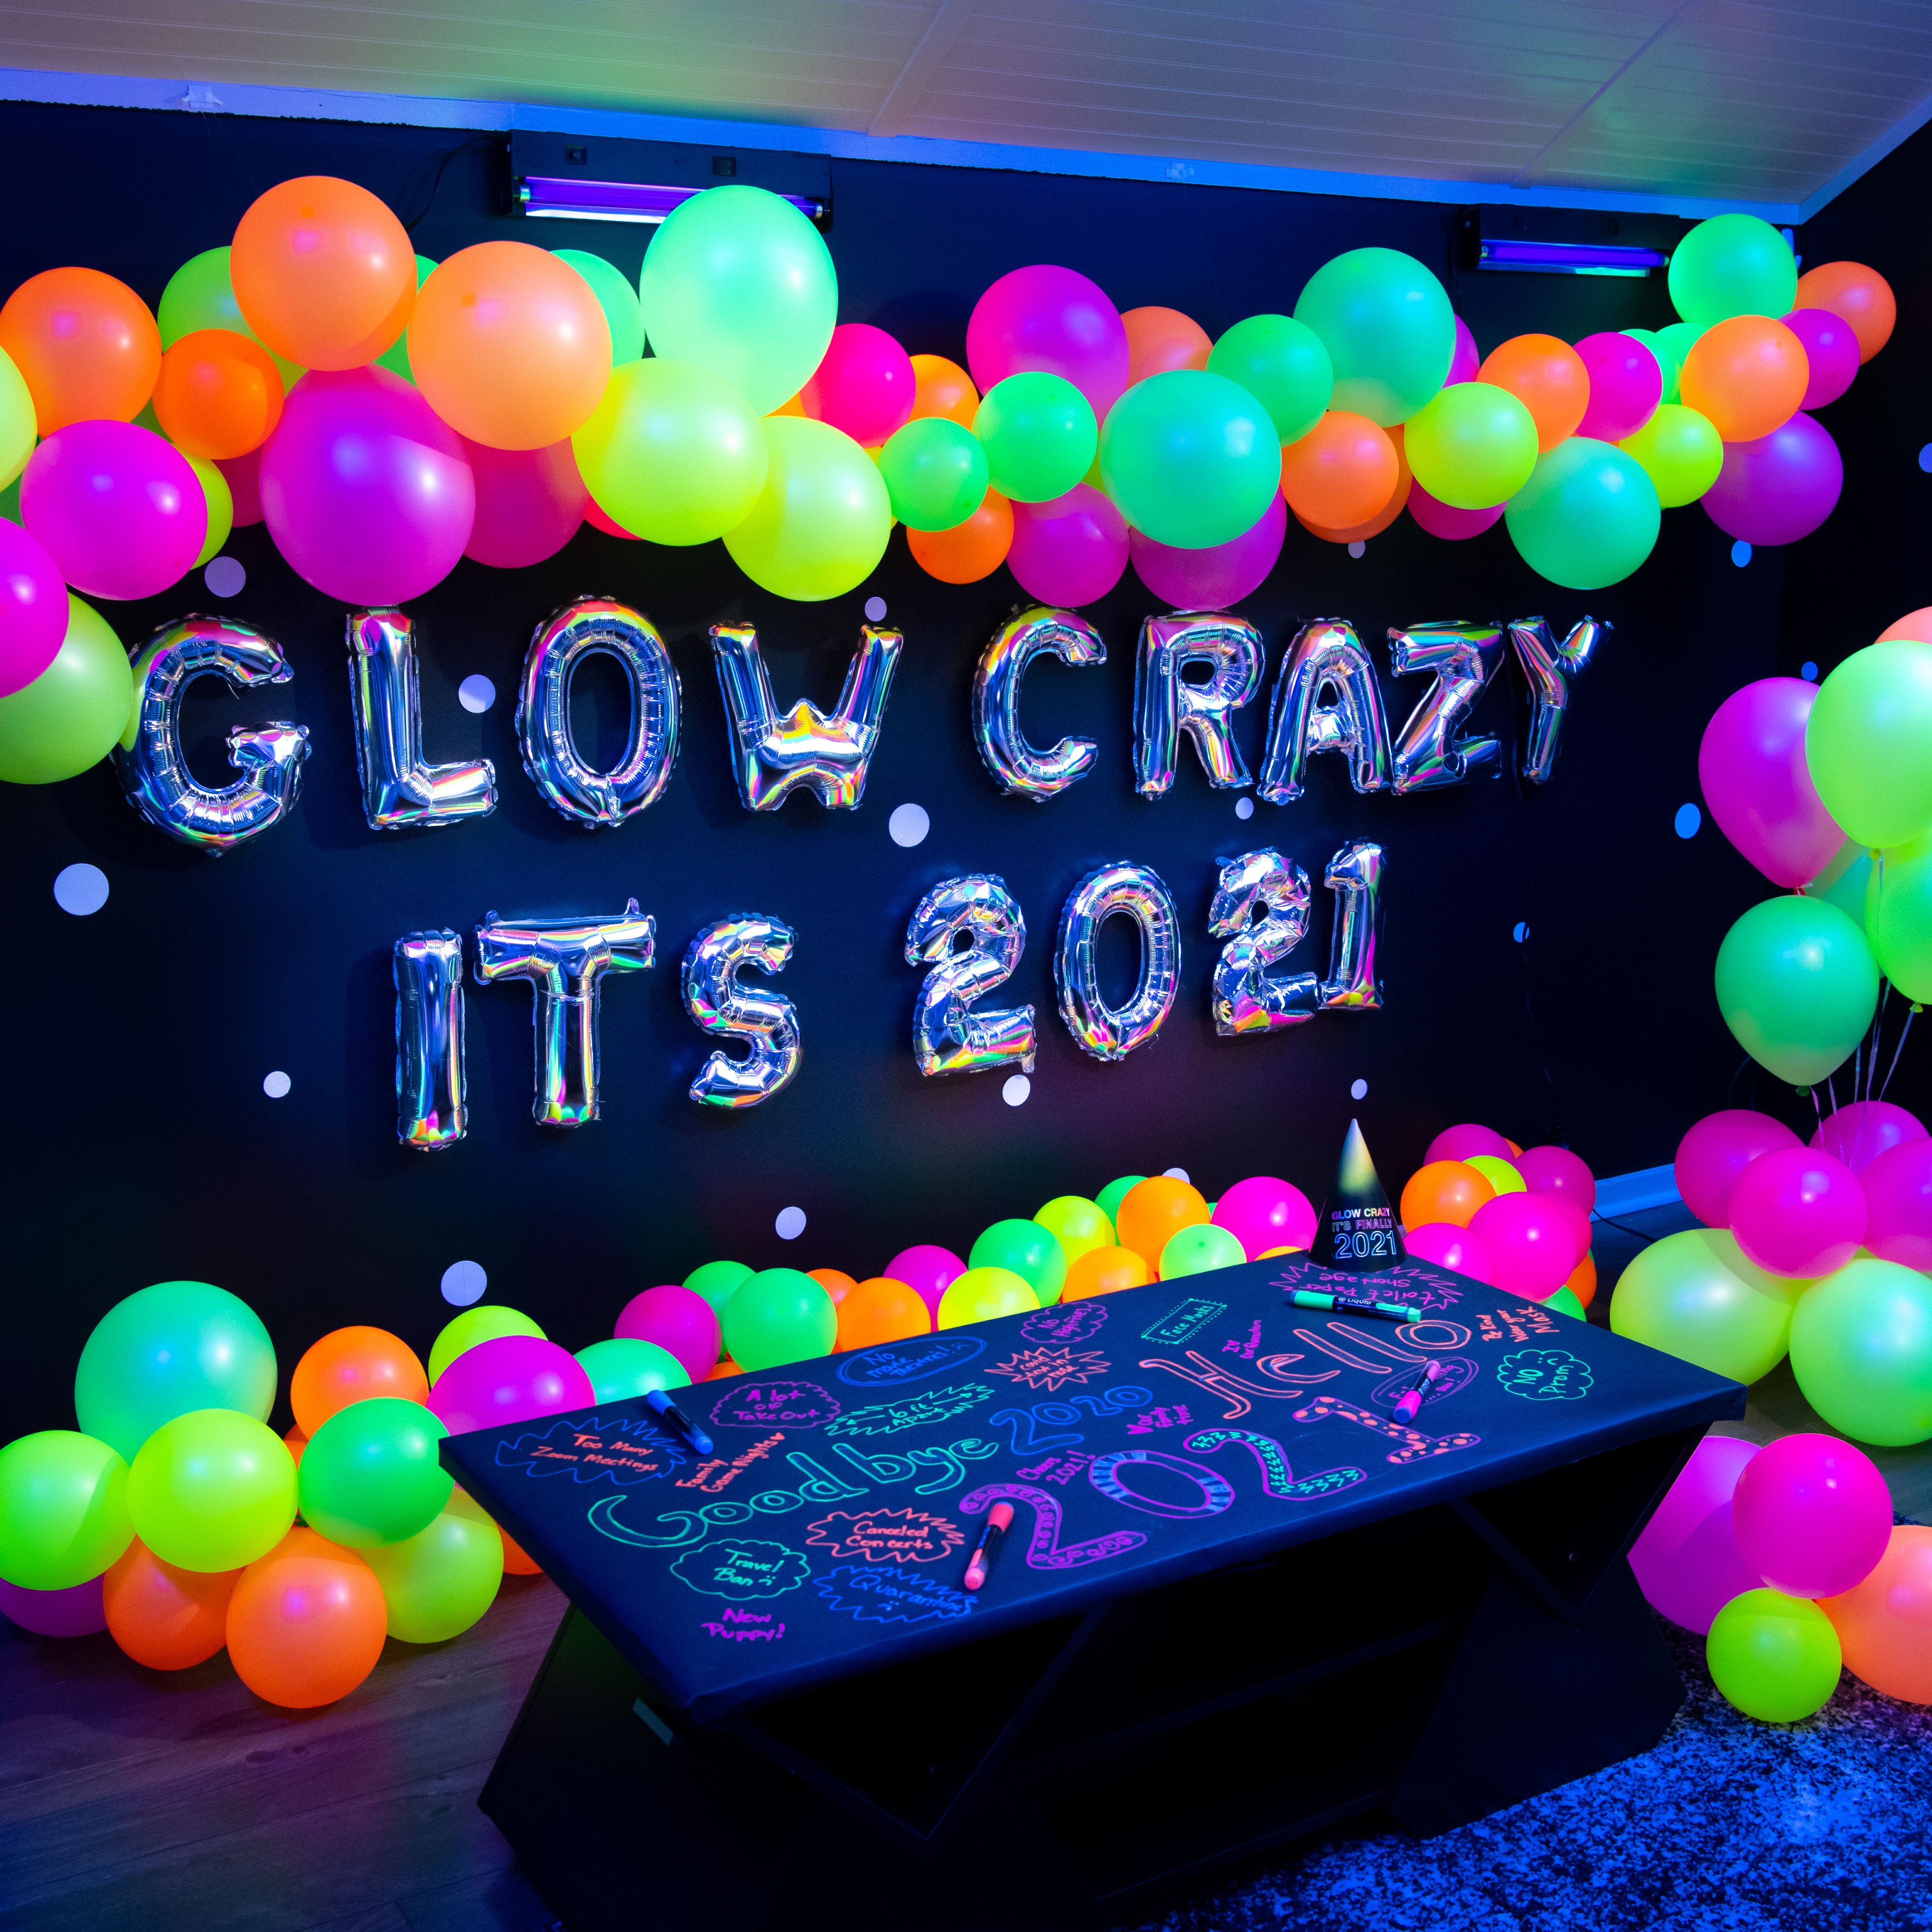 Pin On New Years 2021 Glow Party 2021 new year balloons and gift